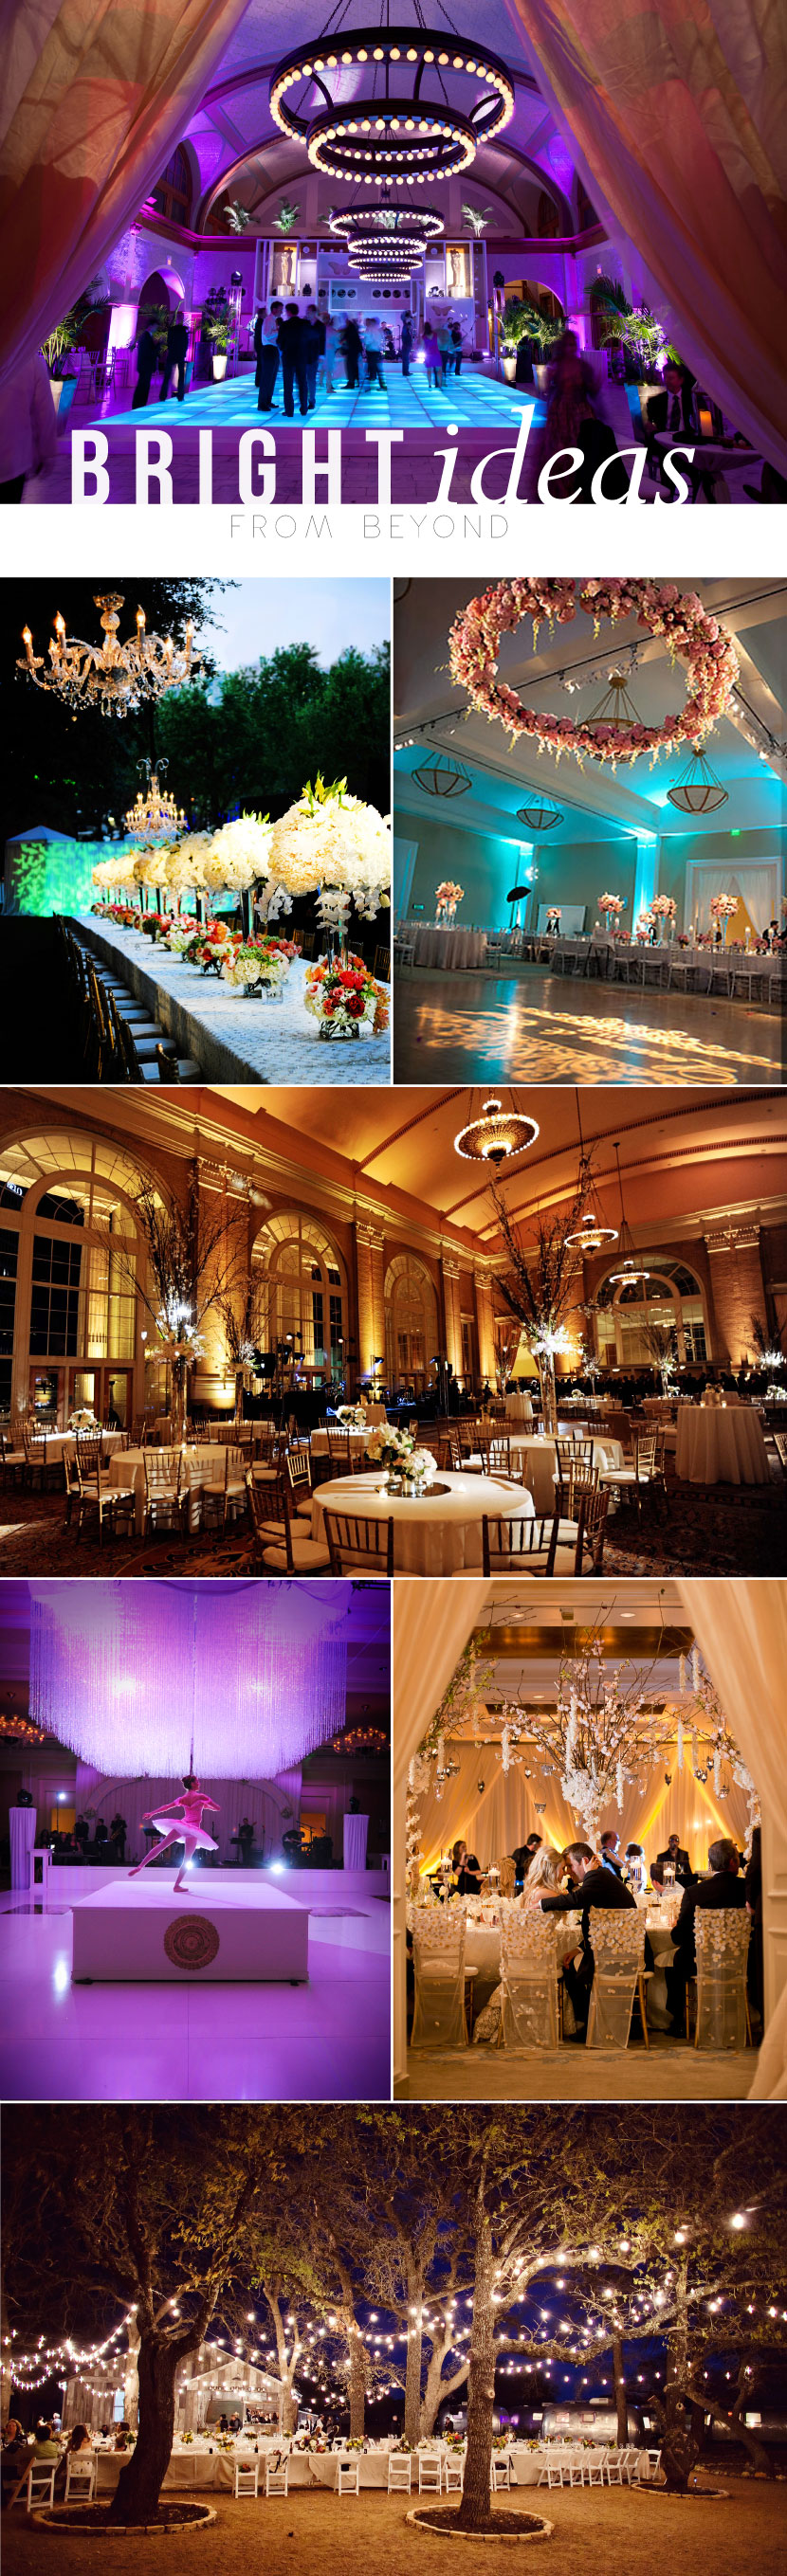 When it comes to lighting your event, Beyond — a Dallas-based company that specializes in lighting and videography — is the source! Check out Brides of North Texas blog for more on this ever so talented company!     Photos from top to bottom, left to right: Karlisch Photography, Andrea Polito Photography, Randy + April Wedding Photography, Andrea Polito Photography, Edmonson Weddings, Karlisch Photography, Two Pair Photography  #wedding #lighting #chandeliers #ballroom #outdoor #string…